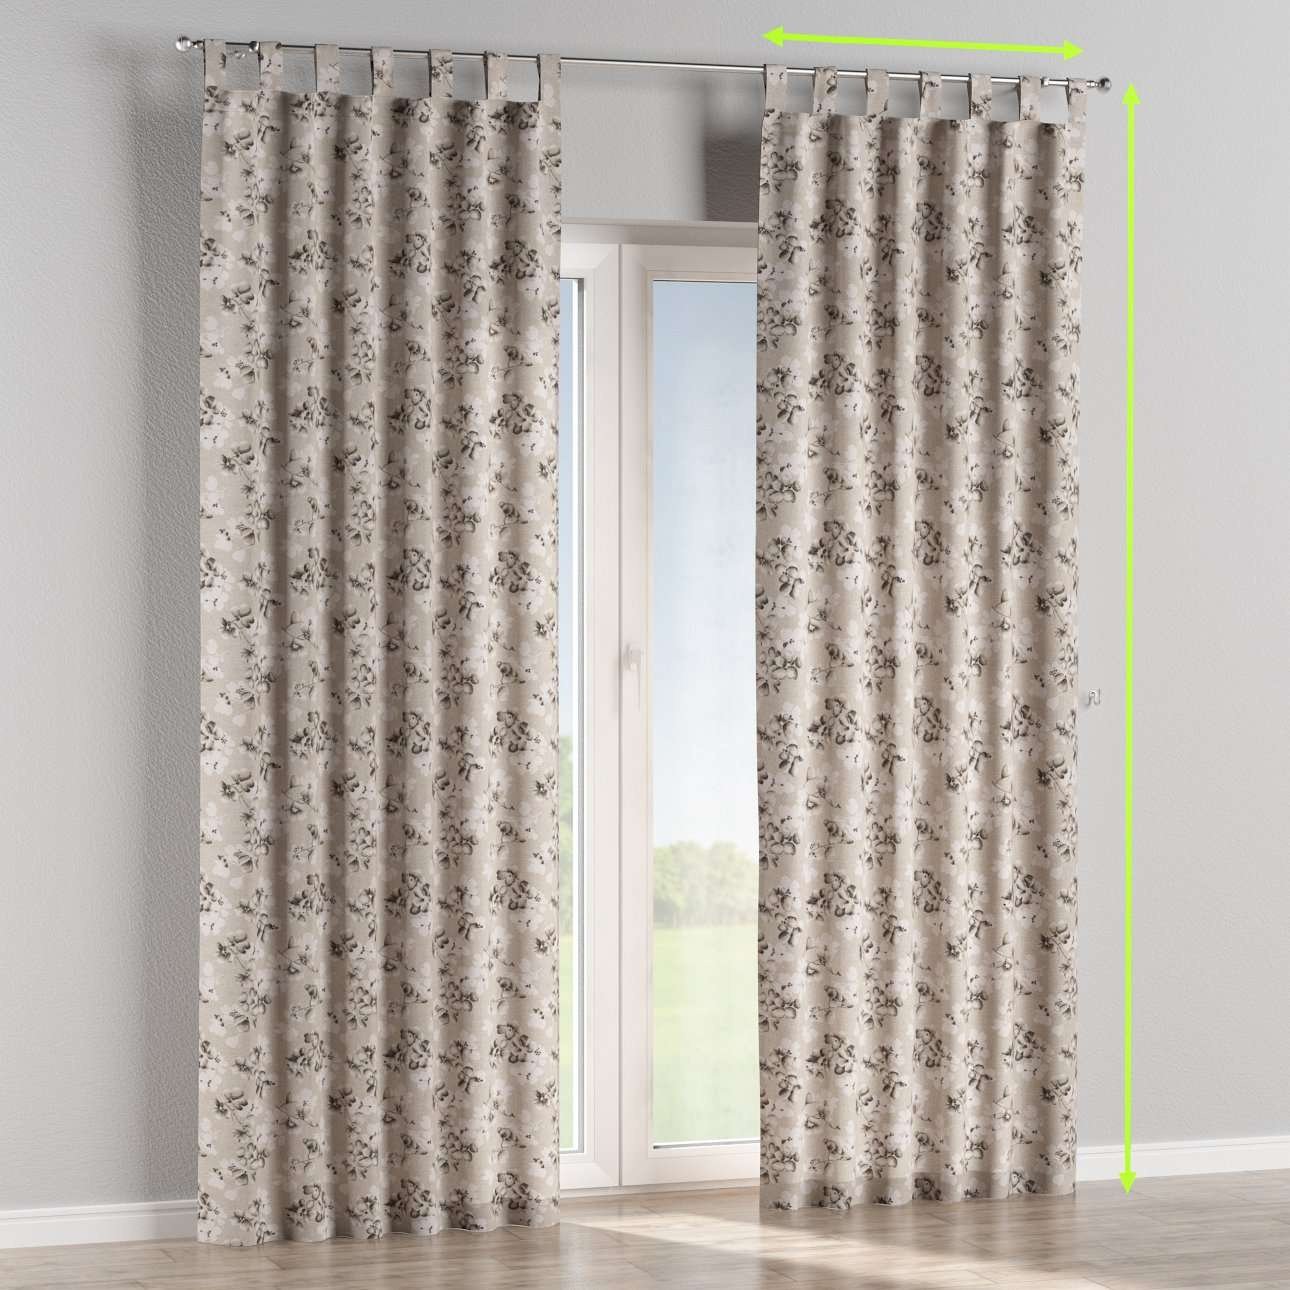 Tab top lined curtains in collection Rustica, fabric: 138-14